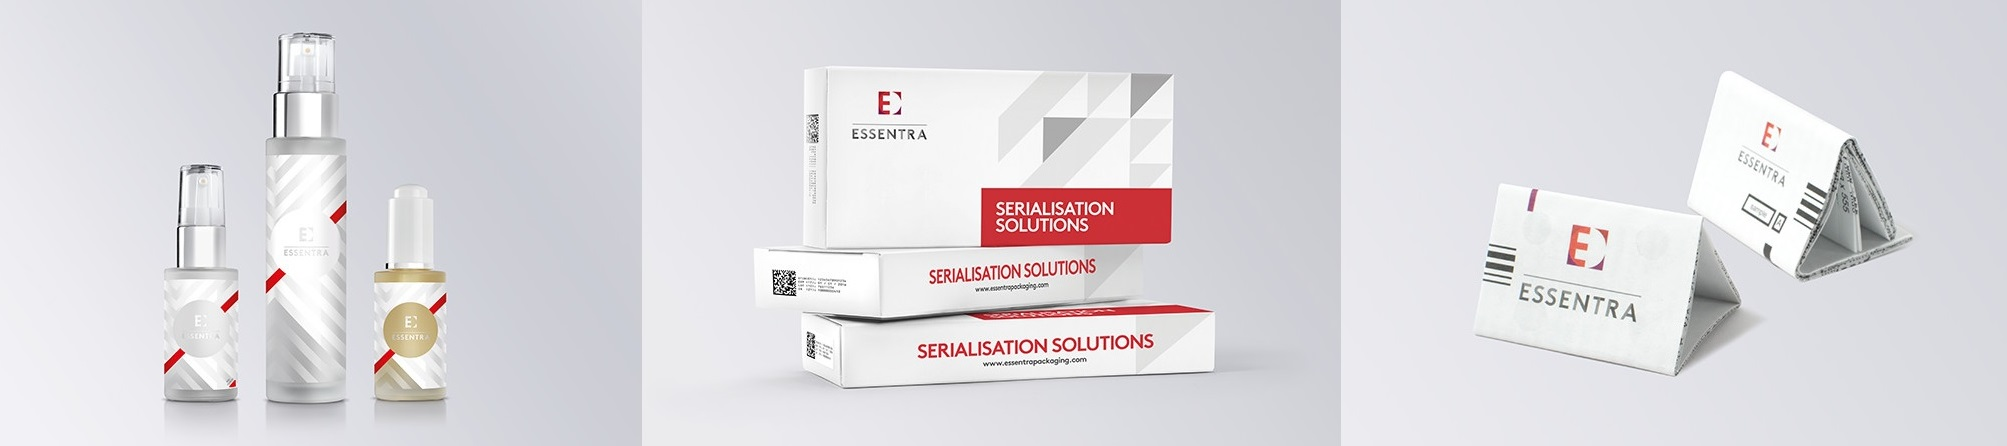 Essentra Packaging